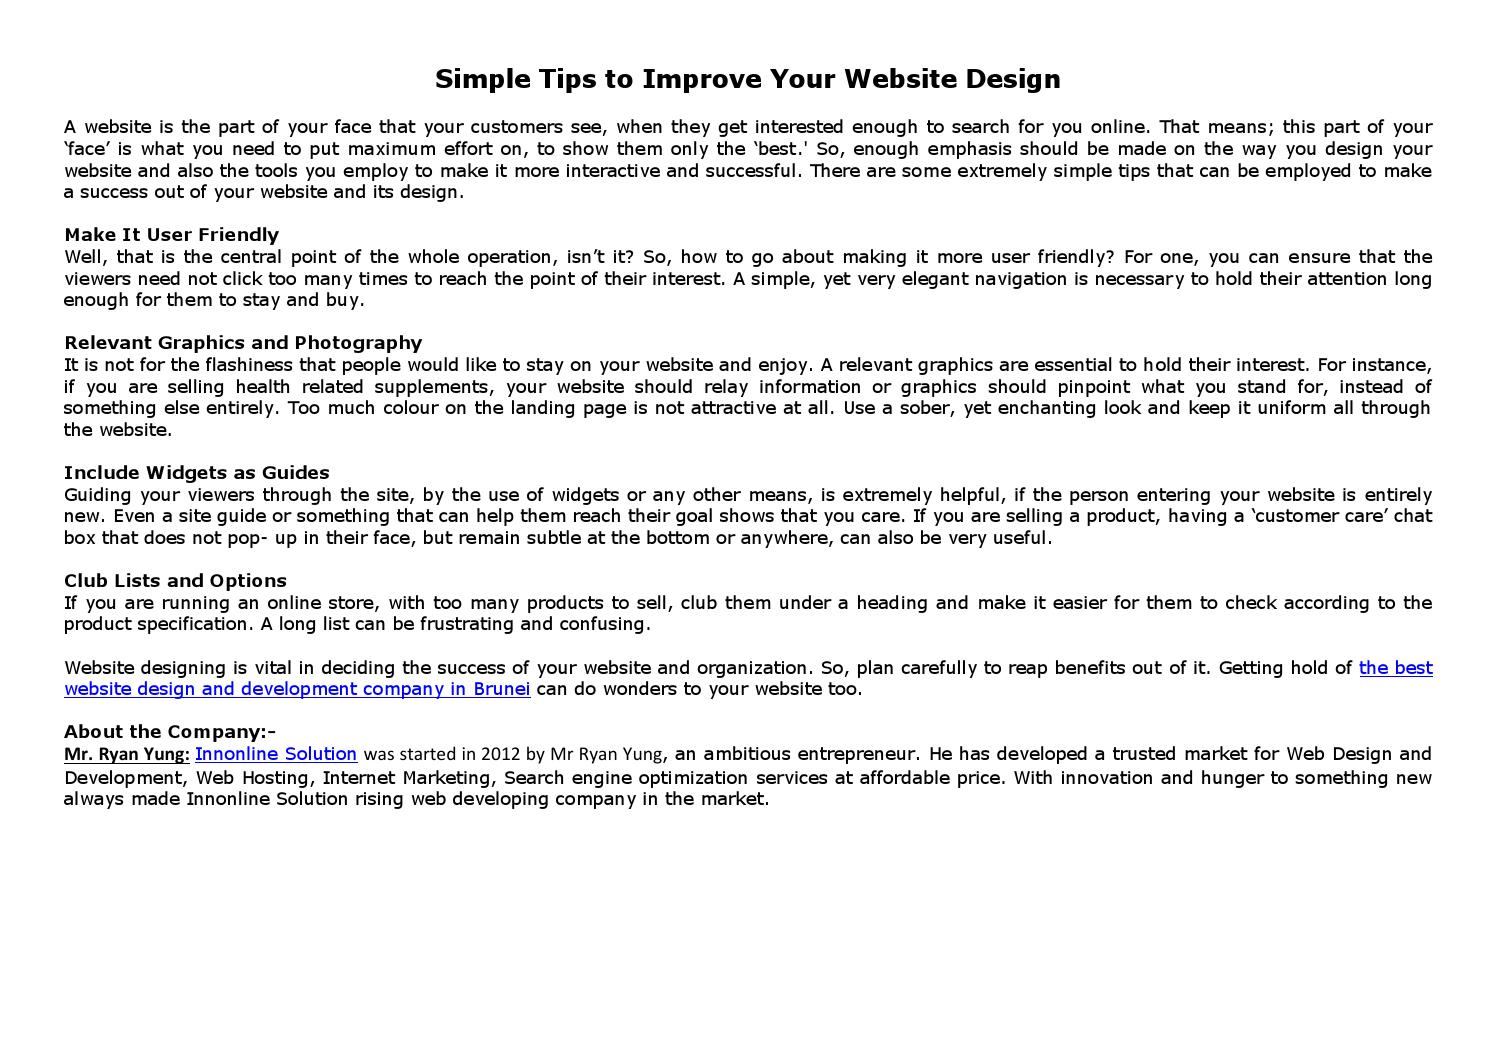 Simple tips to improve your website design by Innonline